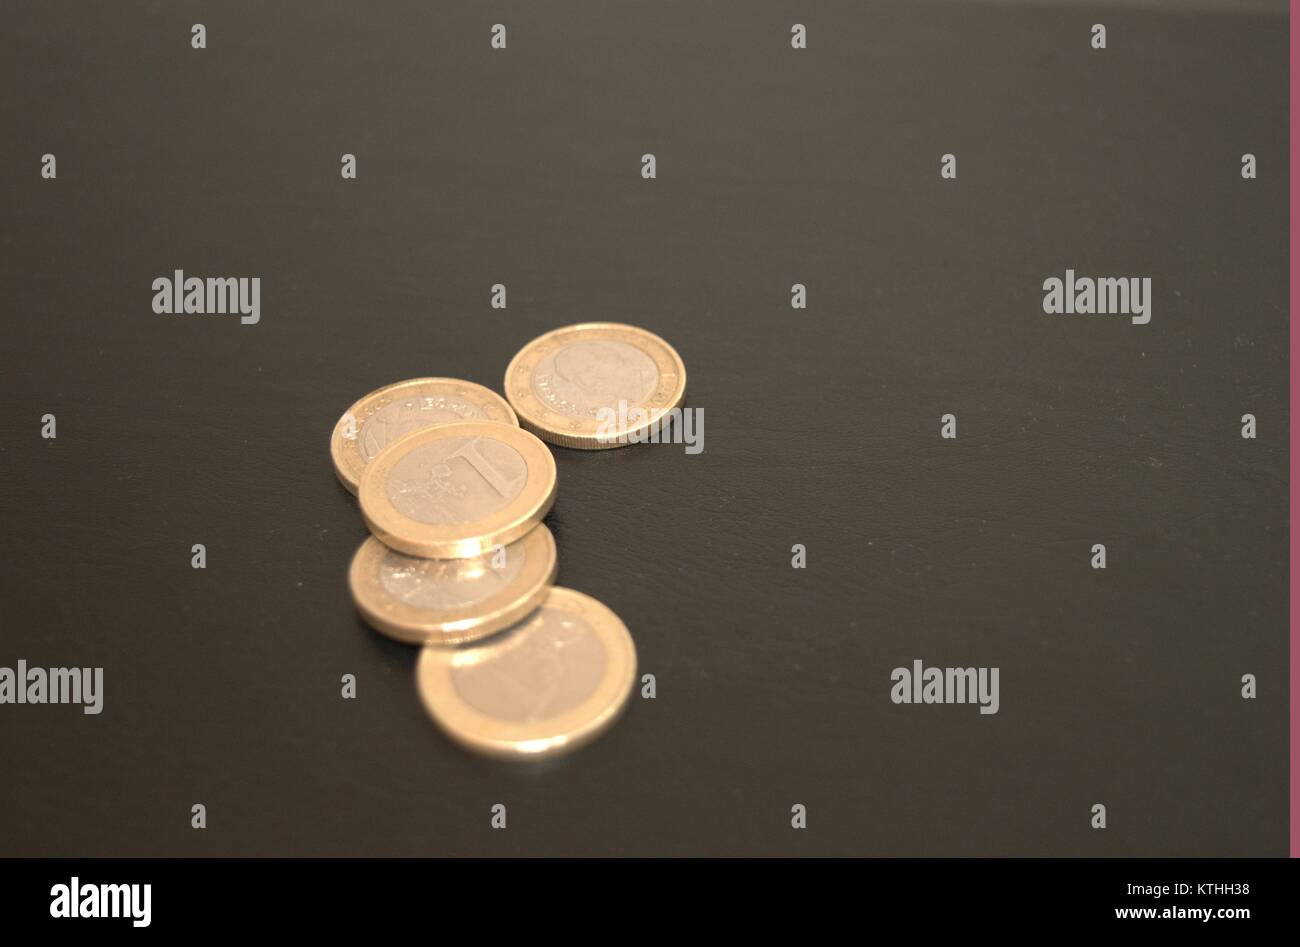 some euro coins and pennies on a dark background giving people the idea of money saving in bad economical situations.take Stock Photo